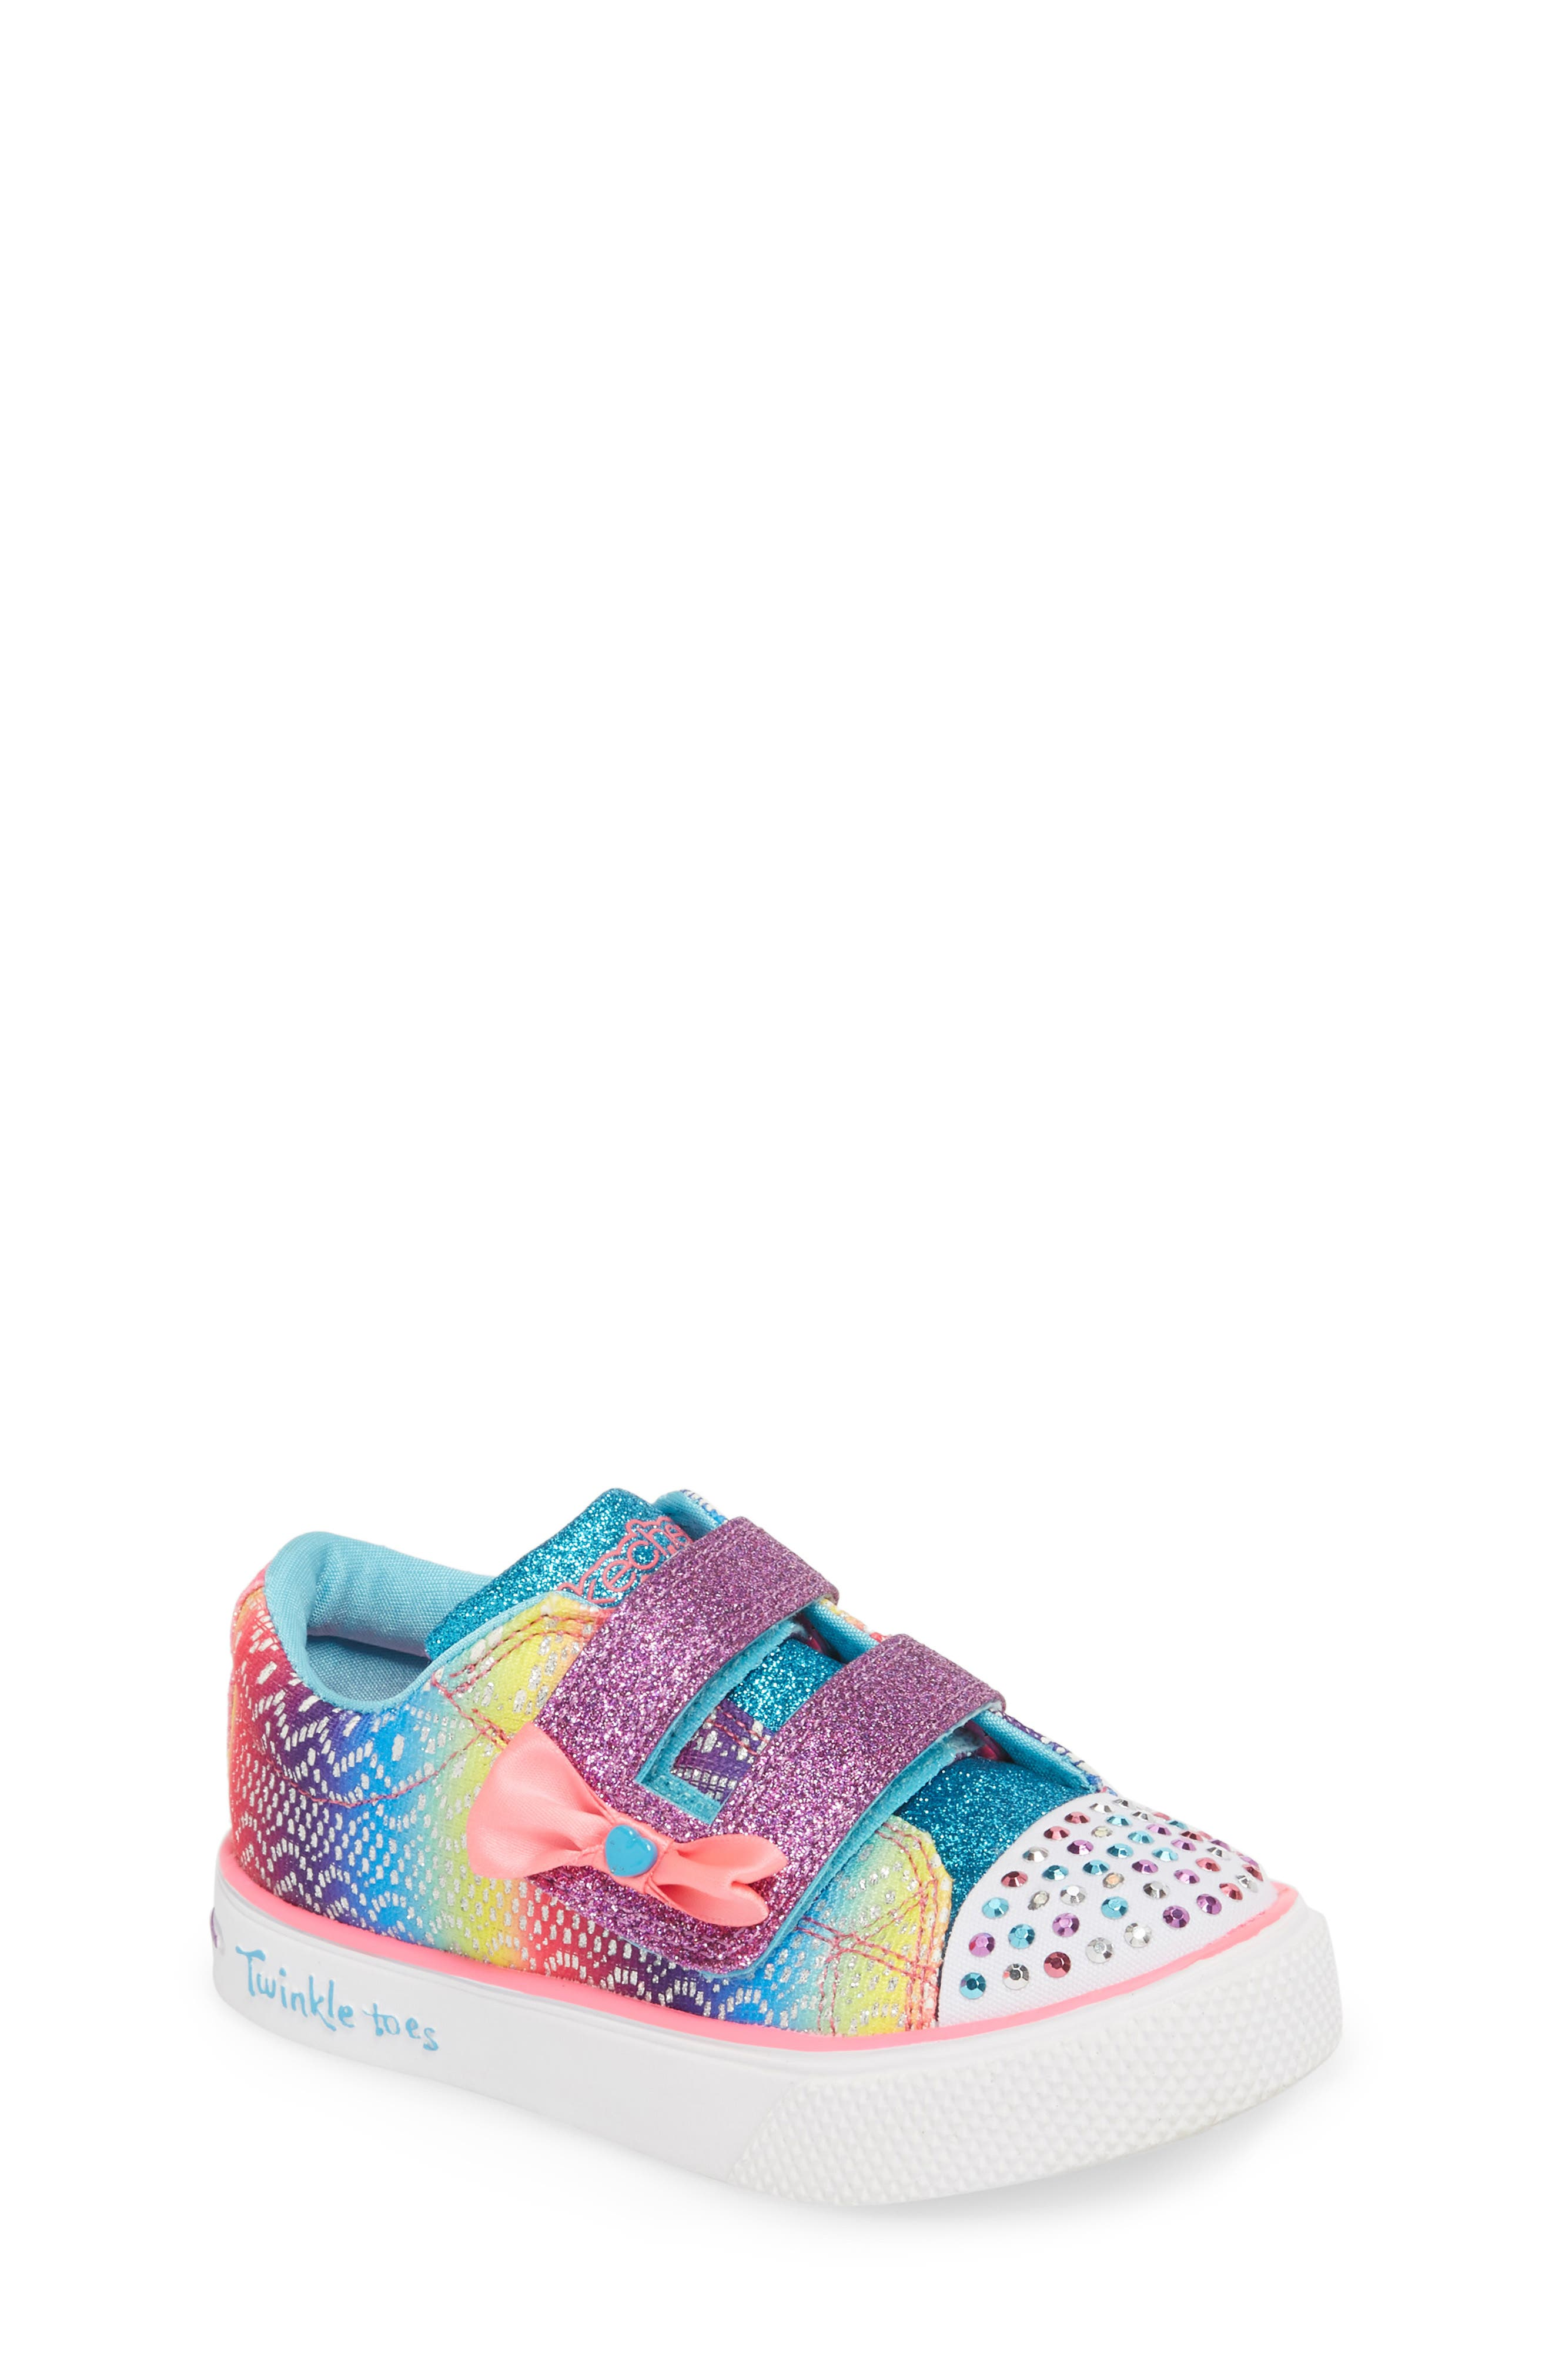 SKECHERS Twinkle Toes Breeze 2.0 Light-Up Sneaker (Walker, Toddler & Little Kid)